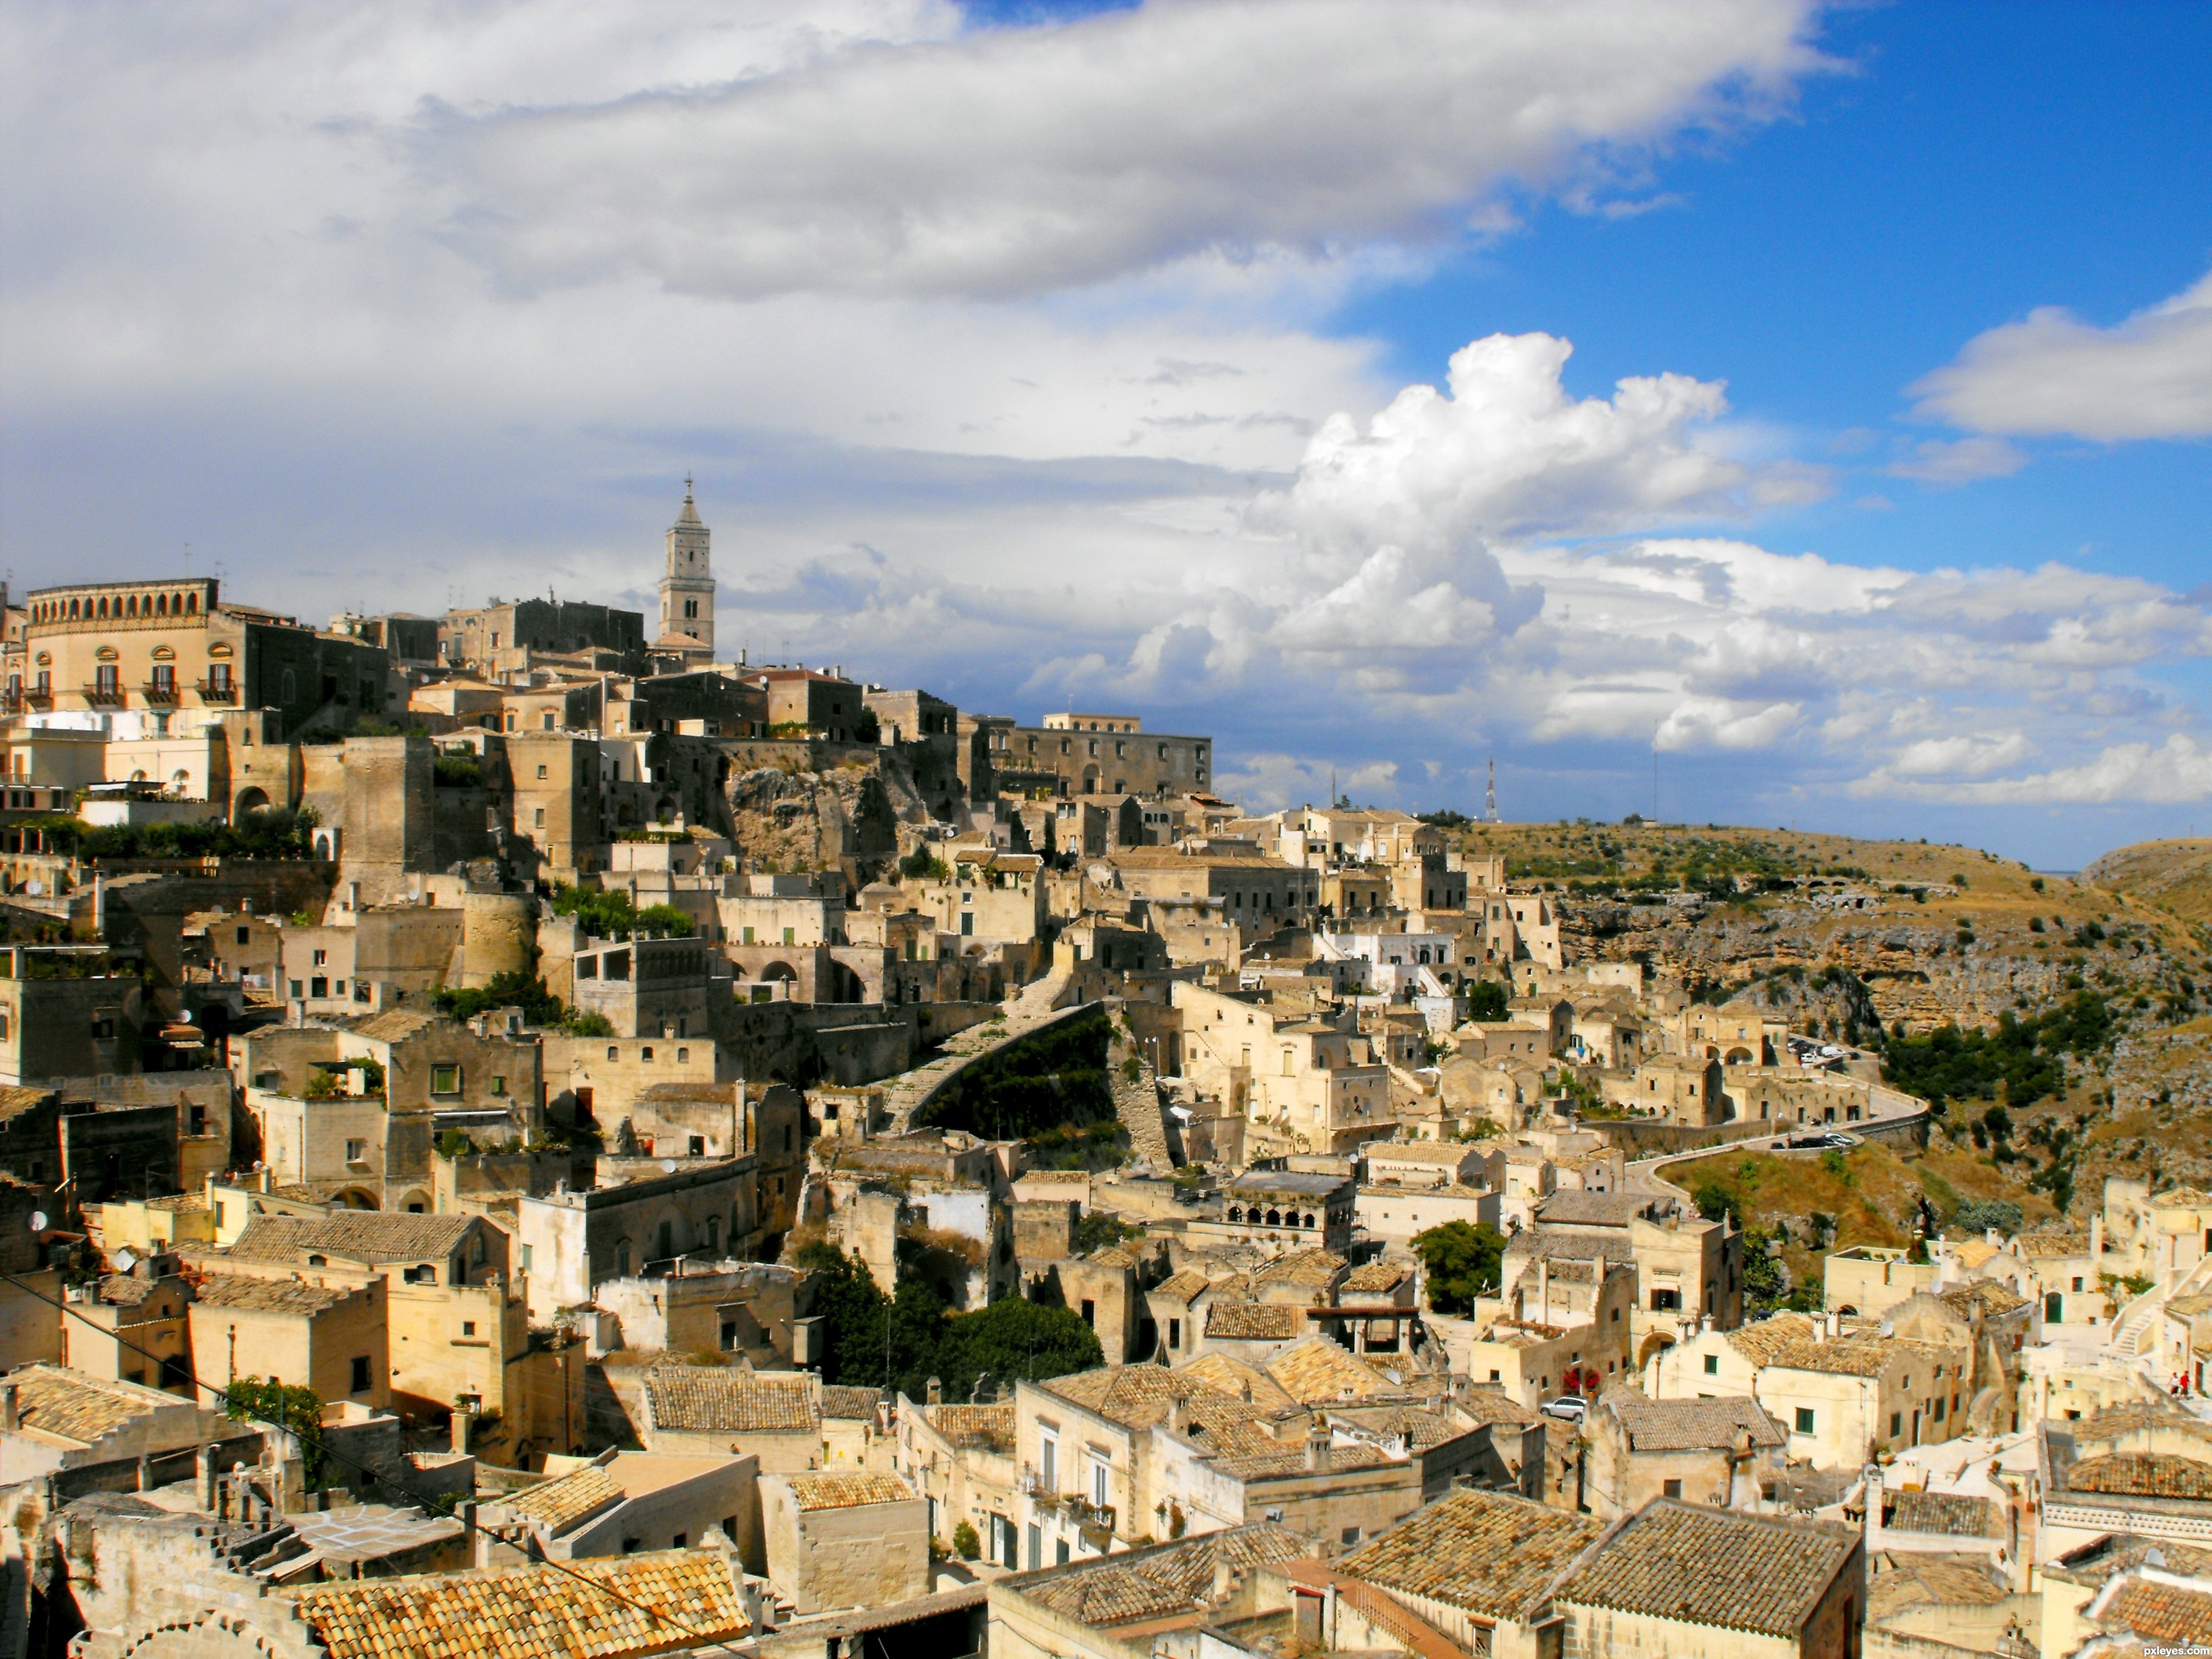 sassi di matera italy picture by sebykxxx for rooftops